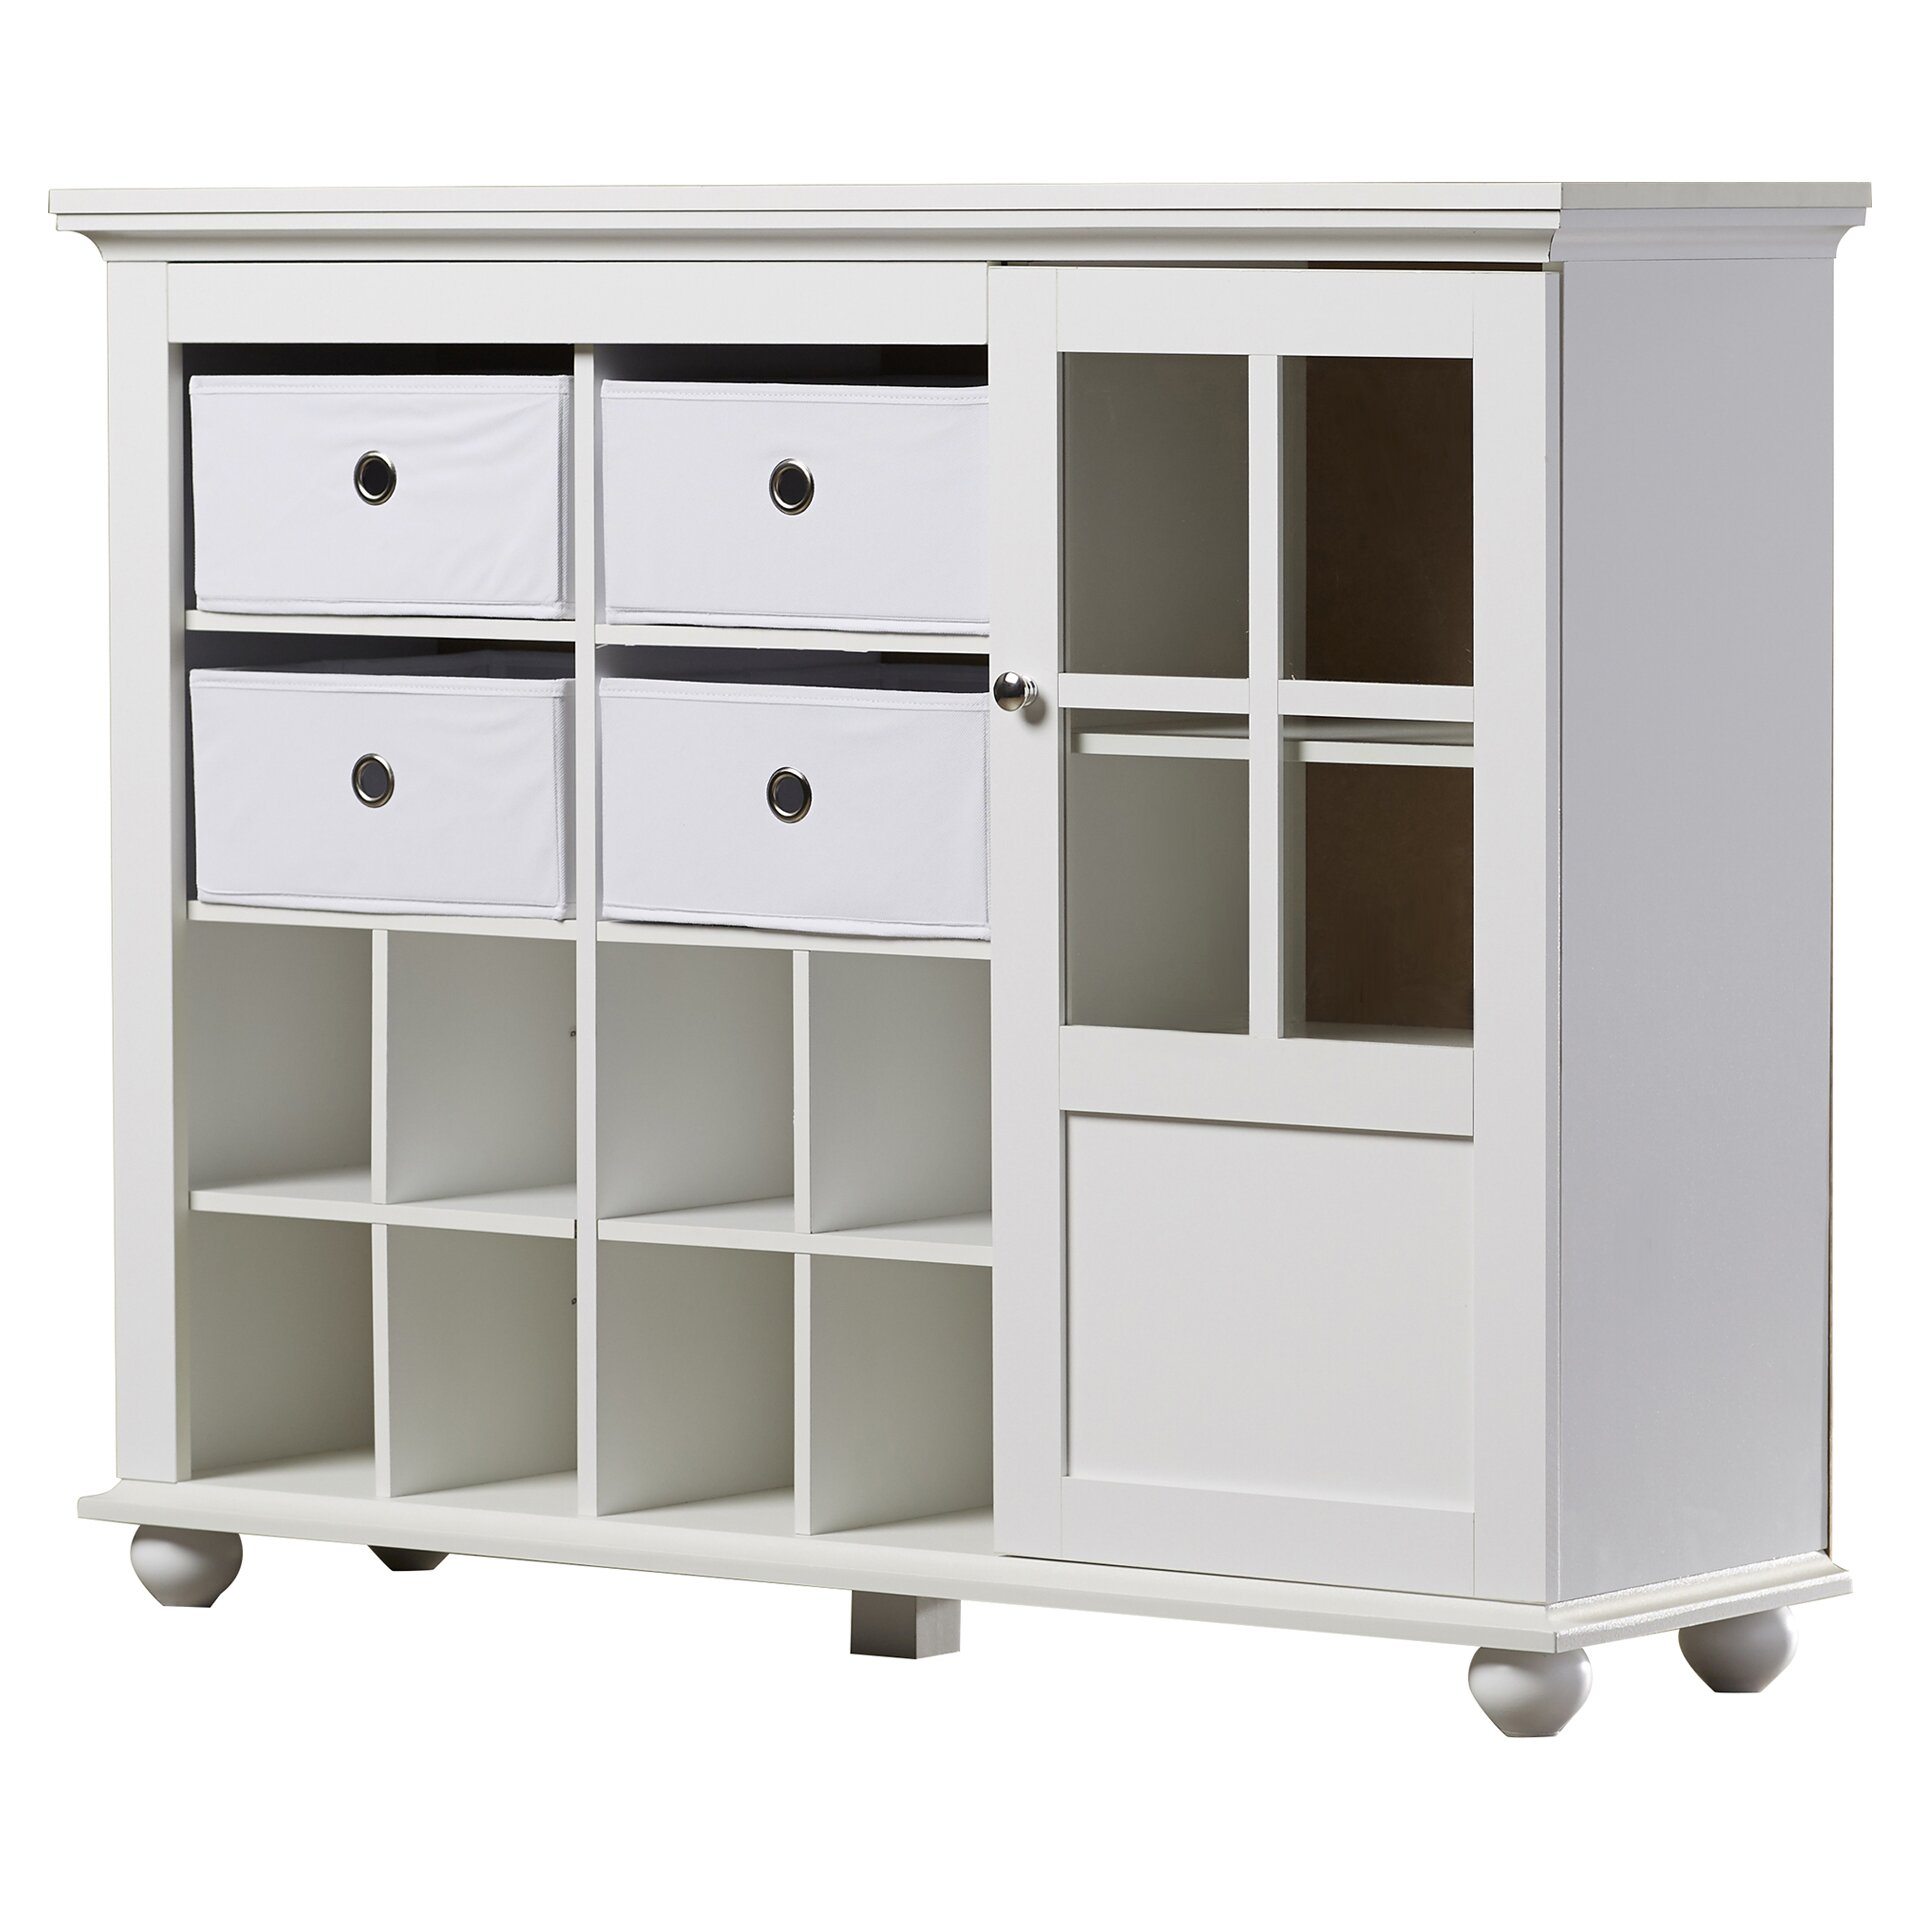 Zipcode design anna storage cabinet reviews wayfair for White cabinets for sale